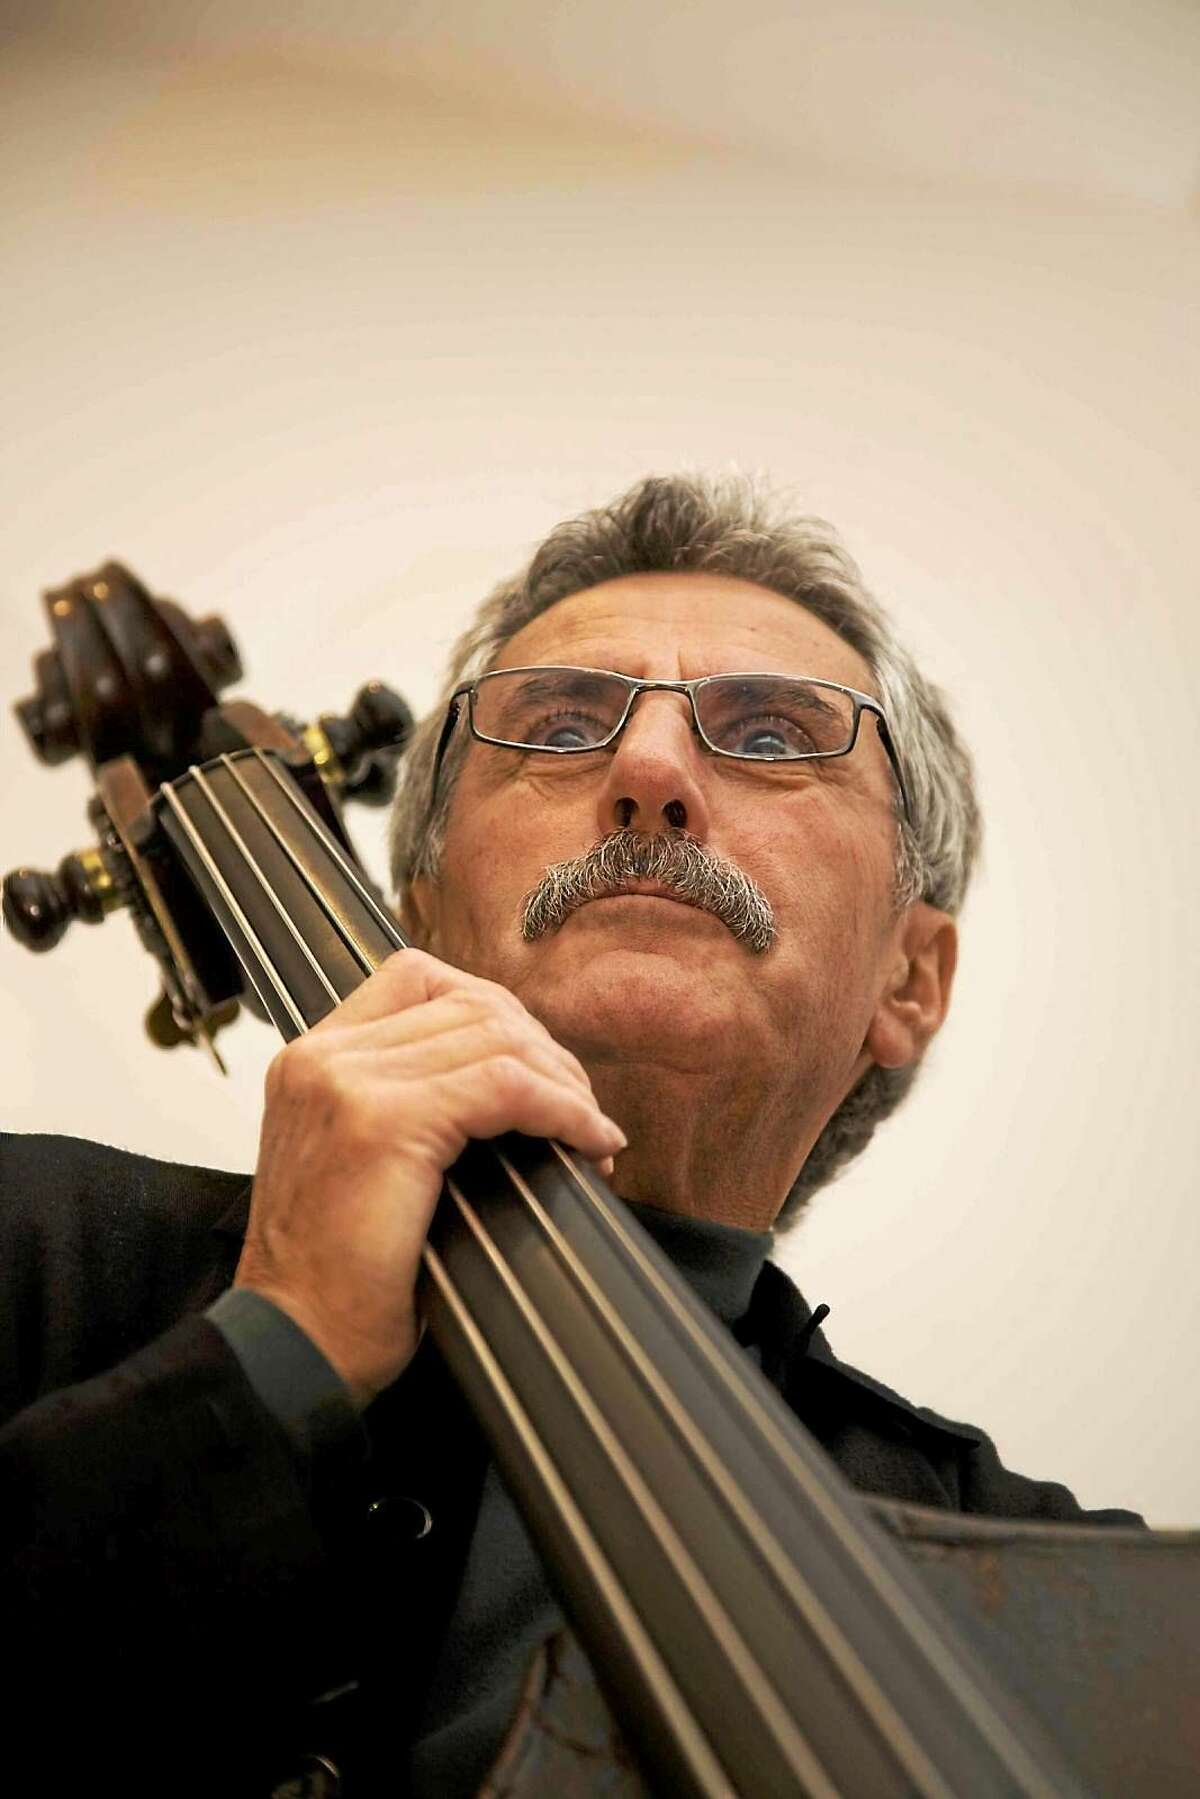 Mario Pavone in Hartford. Pavone anchored the Thomas Chapin Trio and remains an important part of jazz music and the Litchfield Jazz Festival.